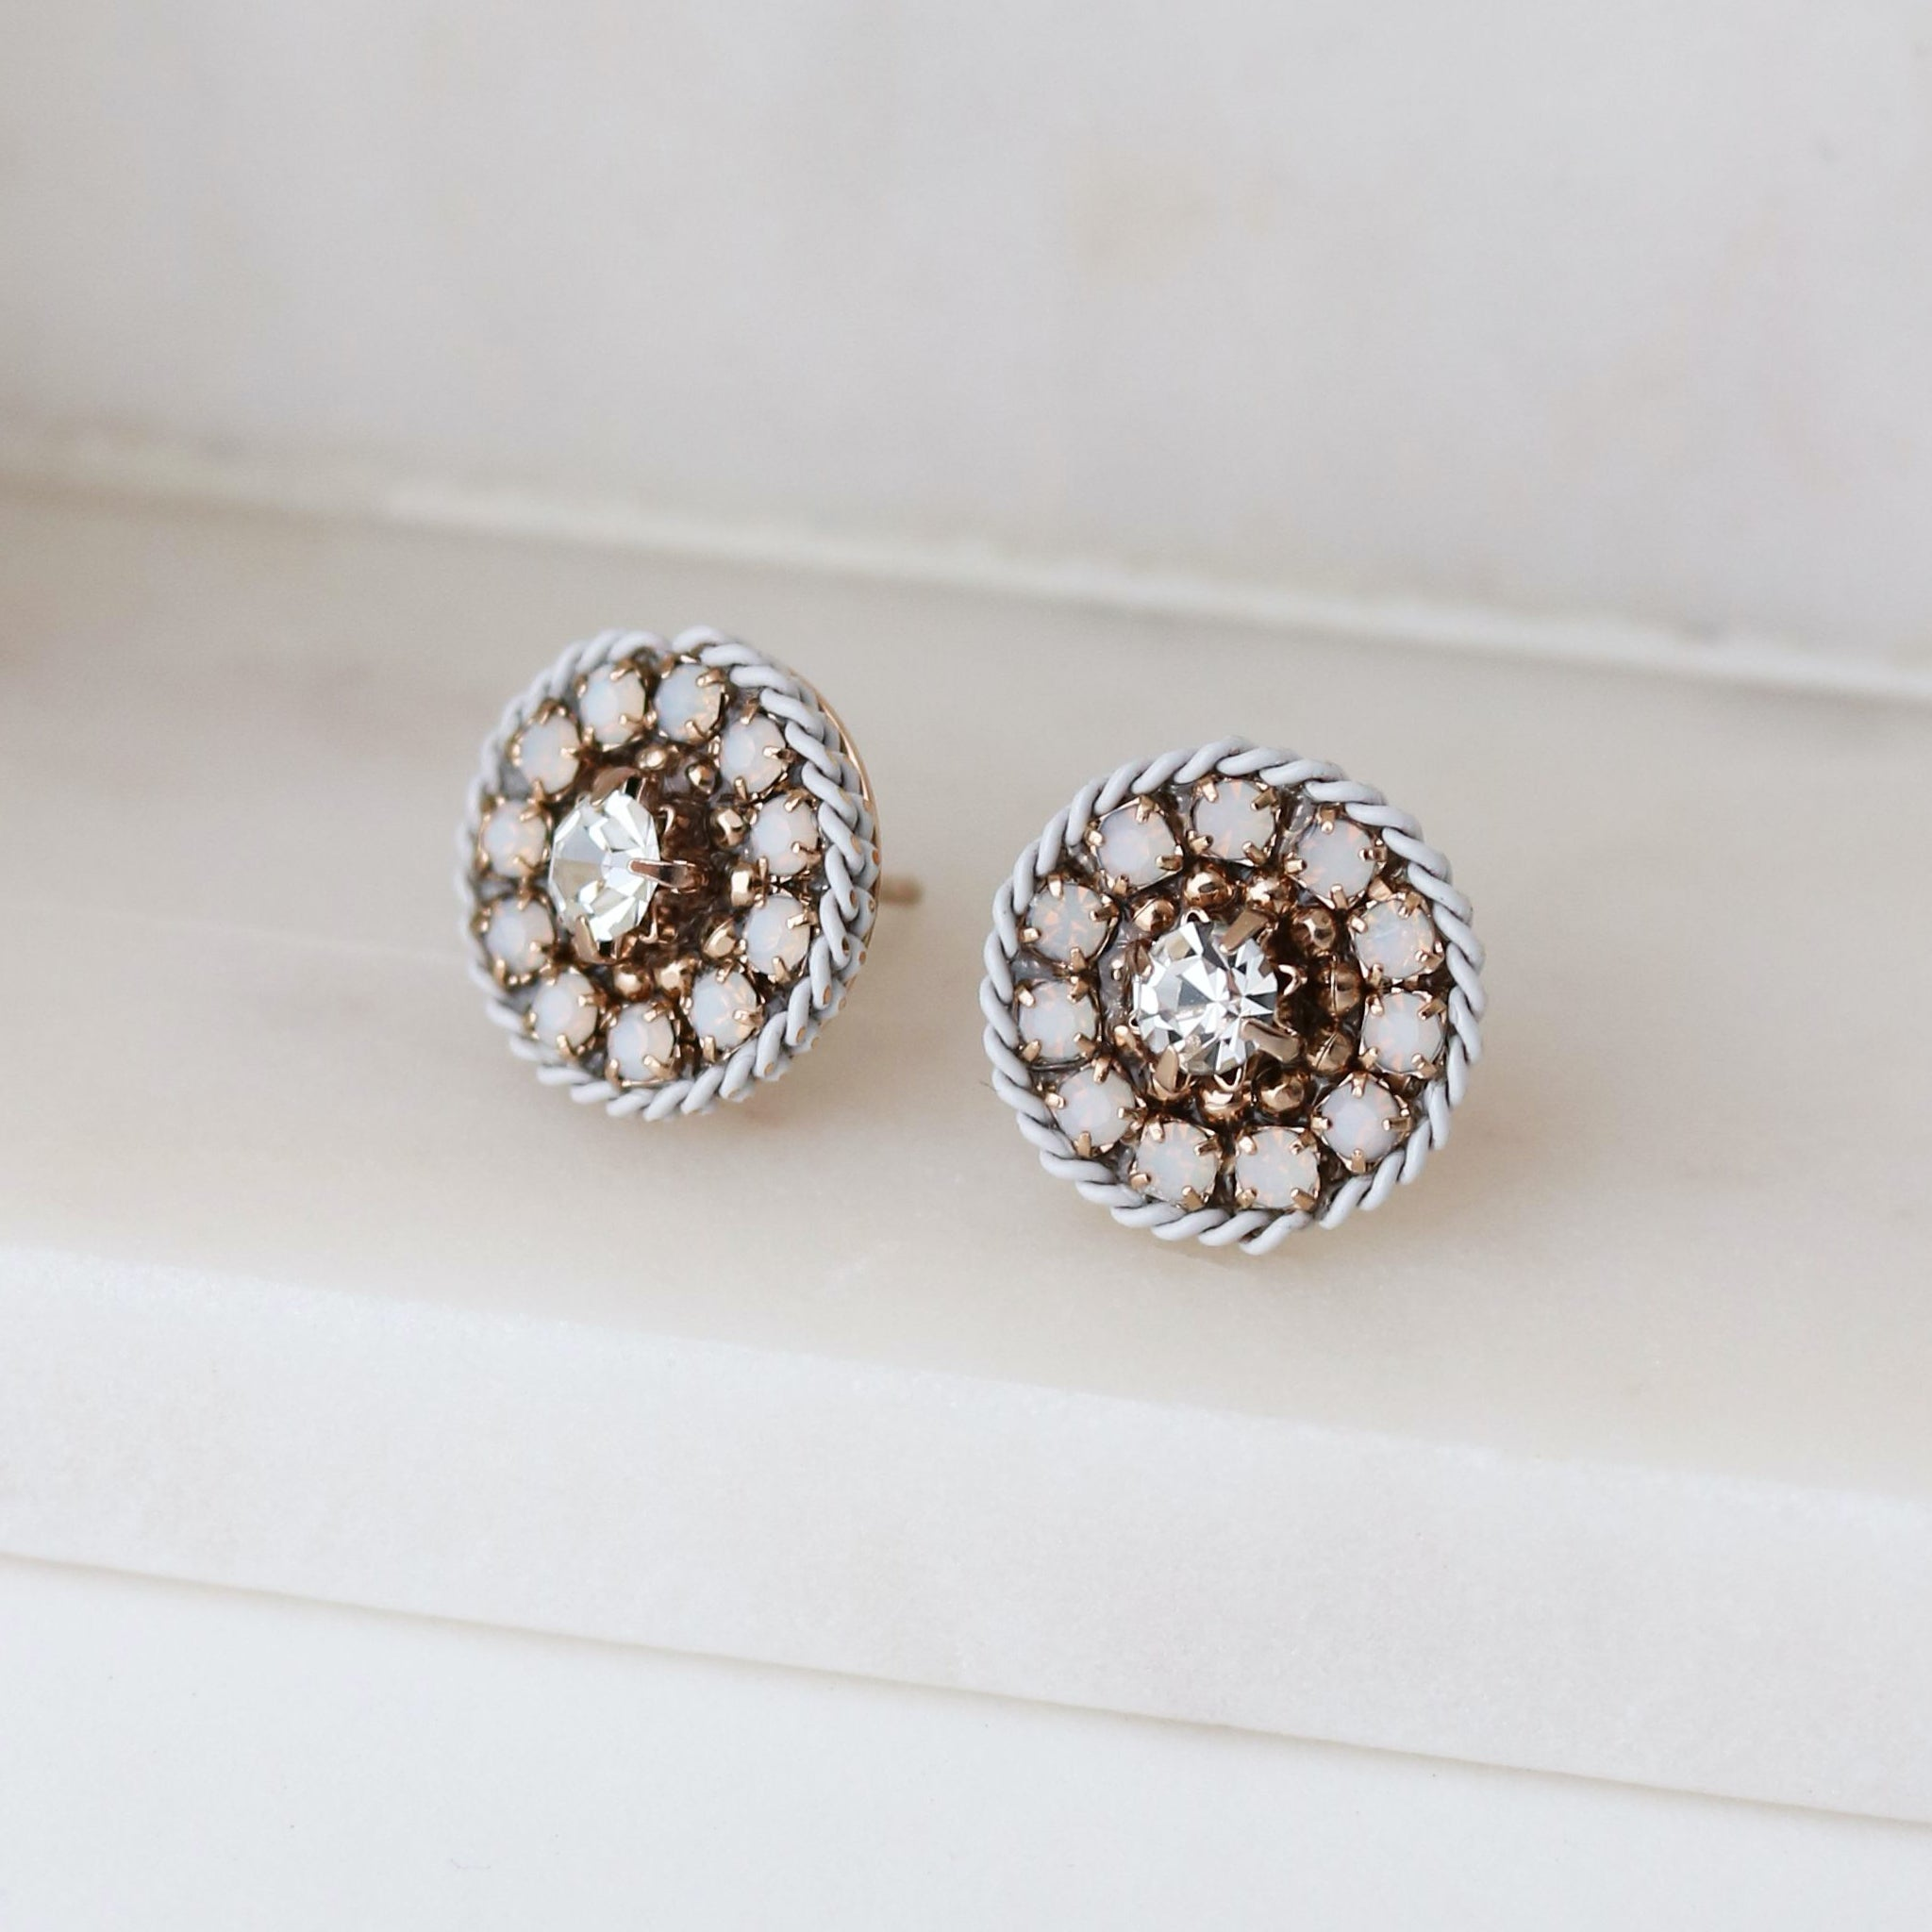 Odyssey Stud Earrings - White